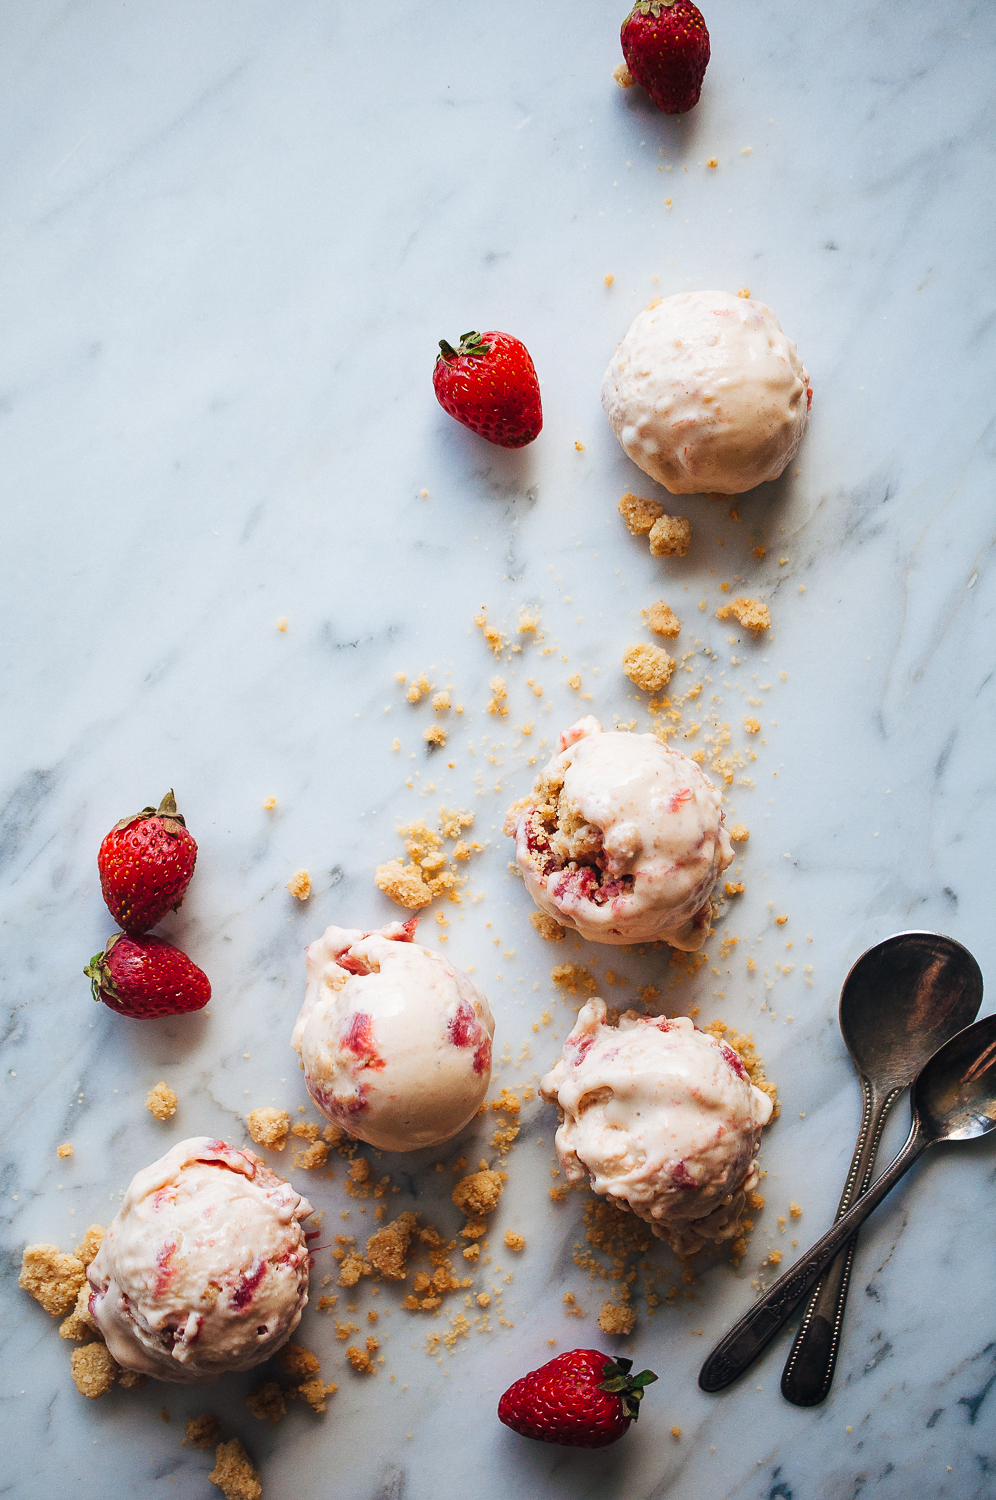 Strawberry Rhubarb Streusel Ice Cream 14.jpg